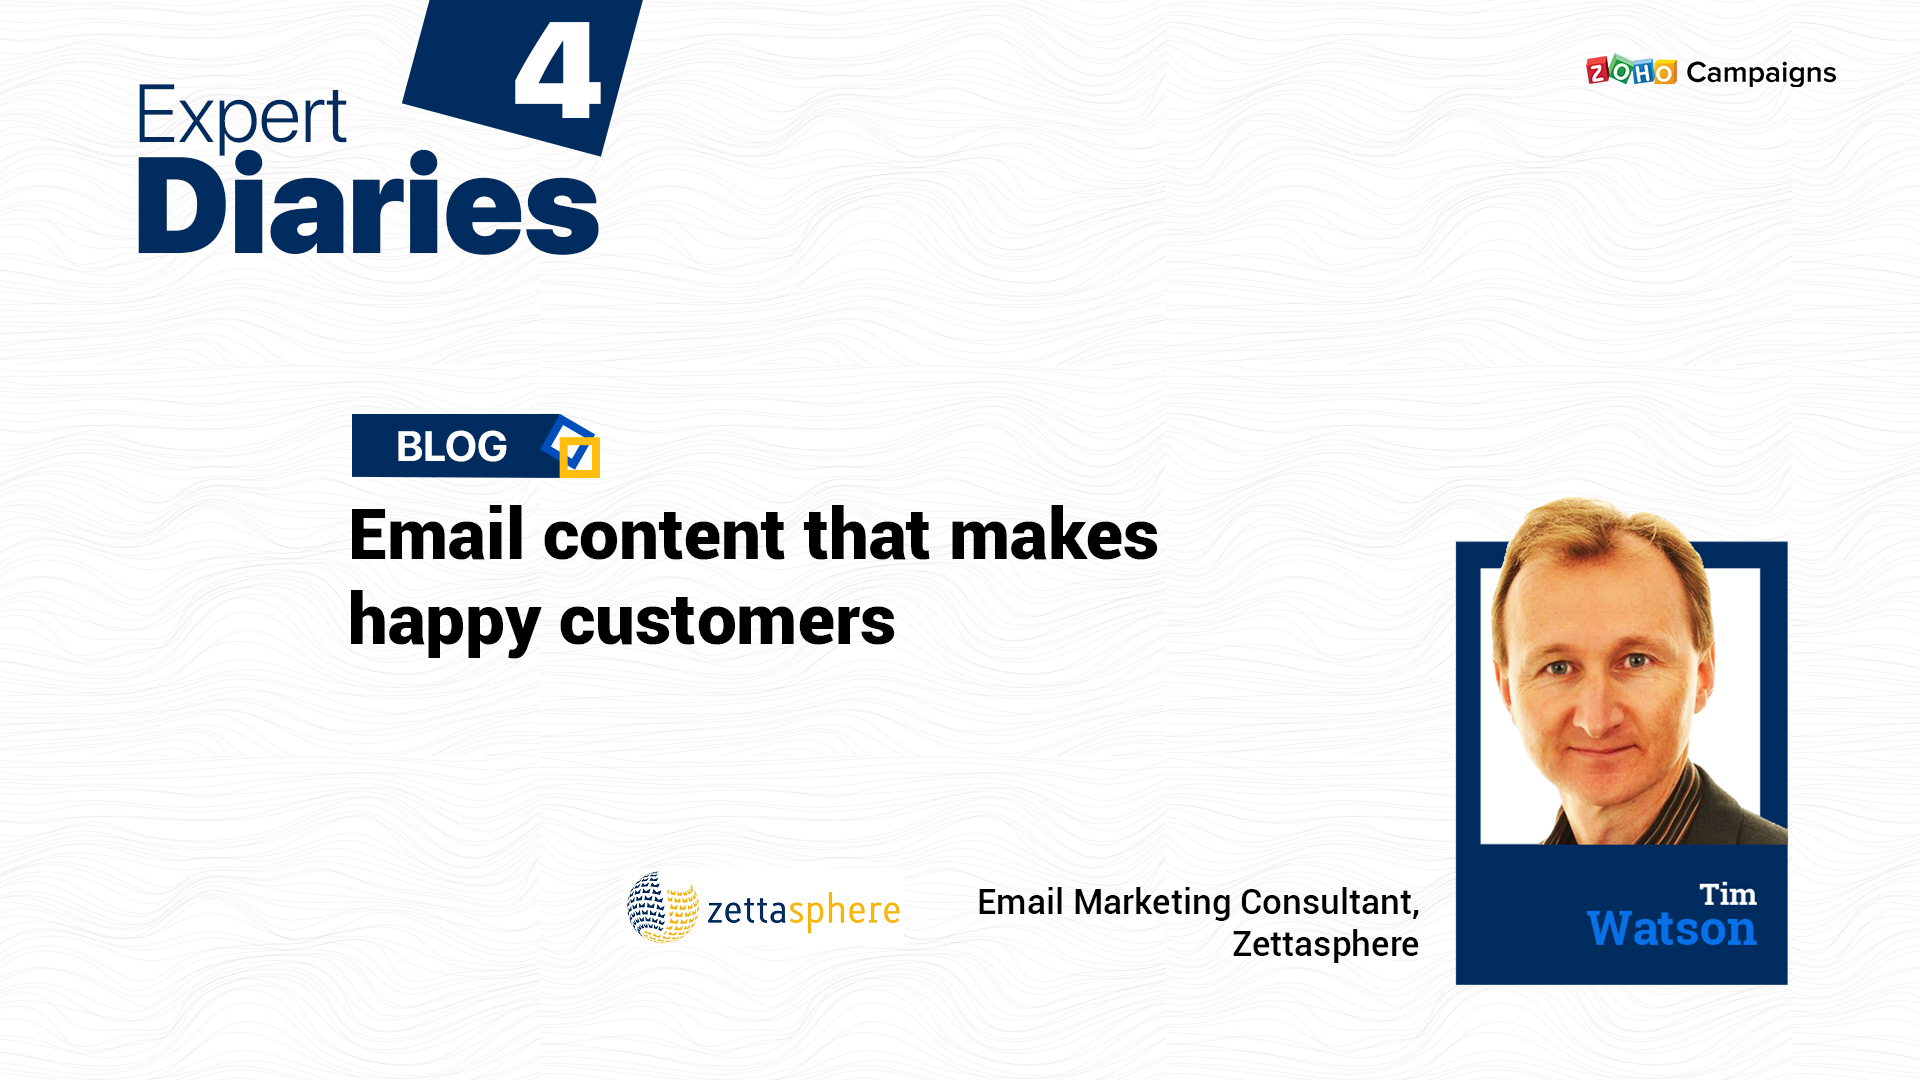 Email content that makes happy customers